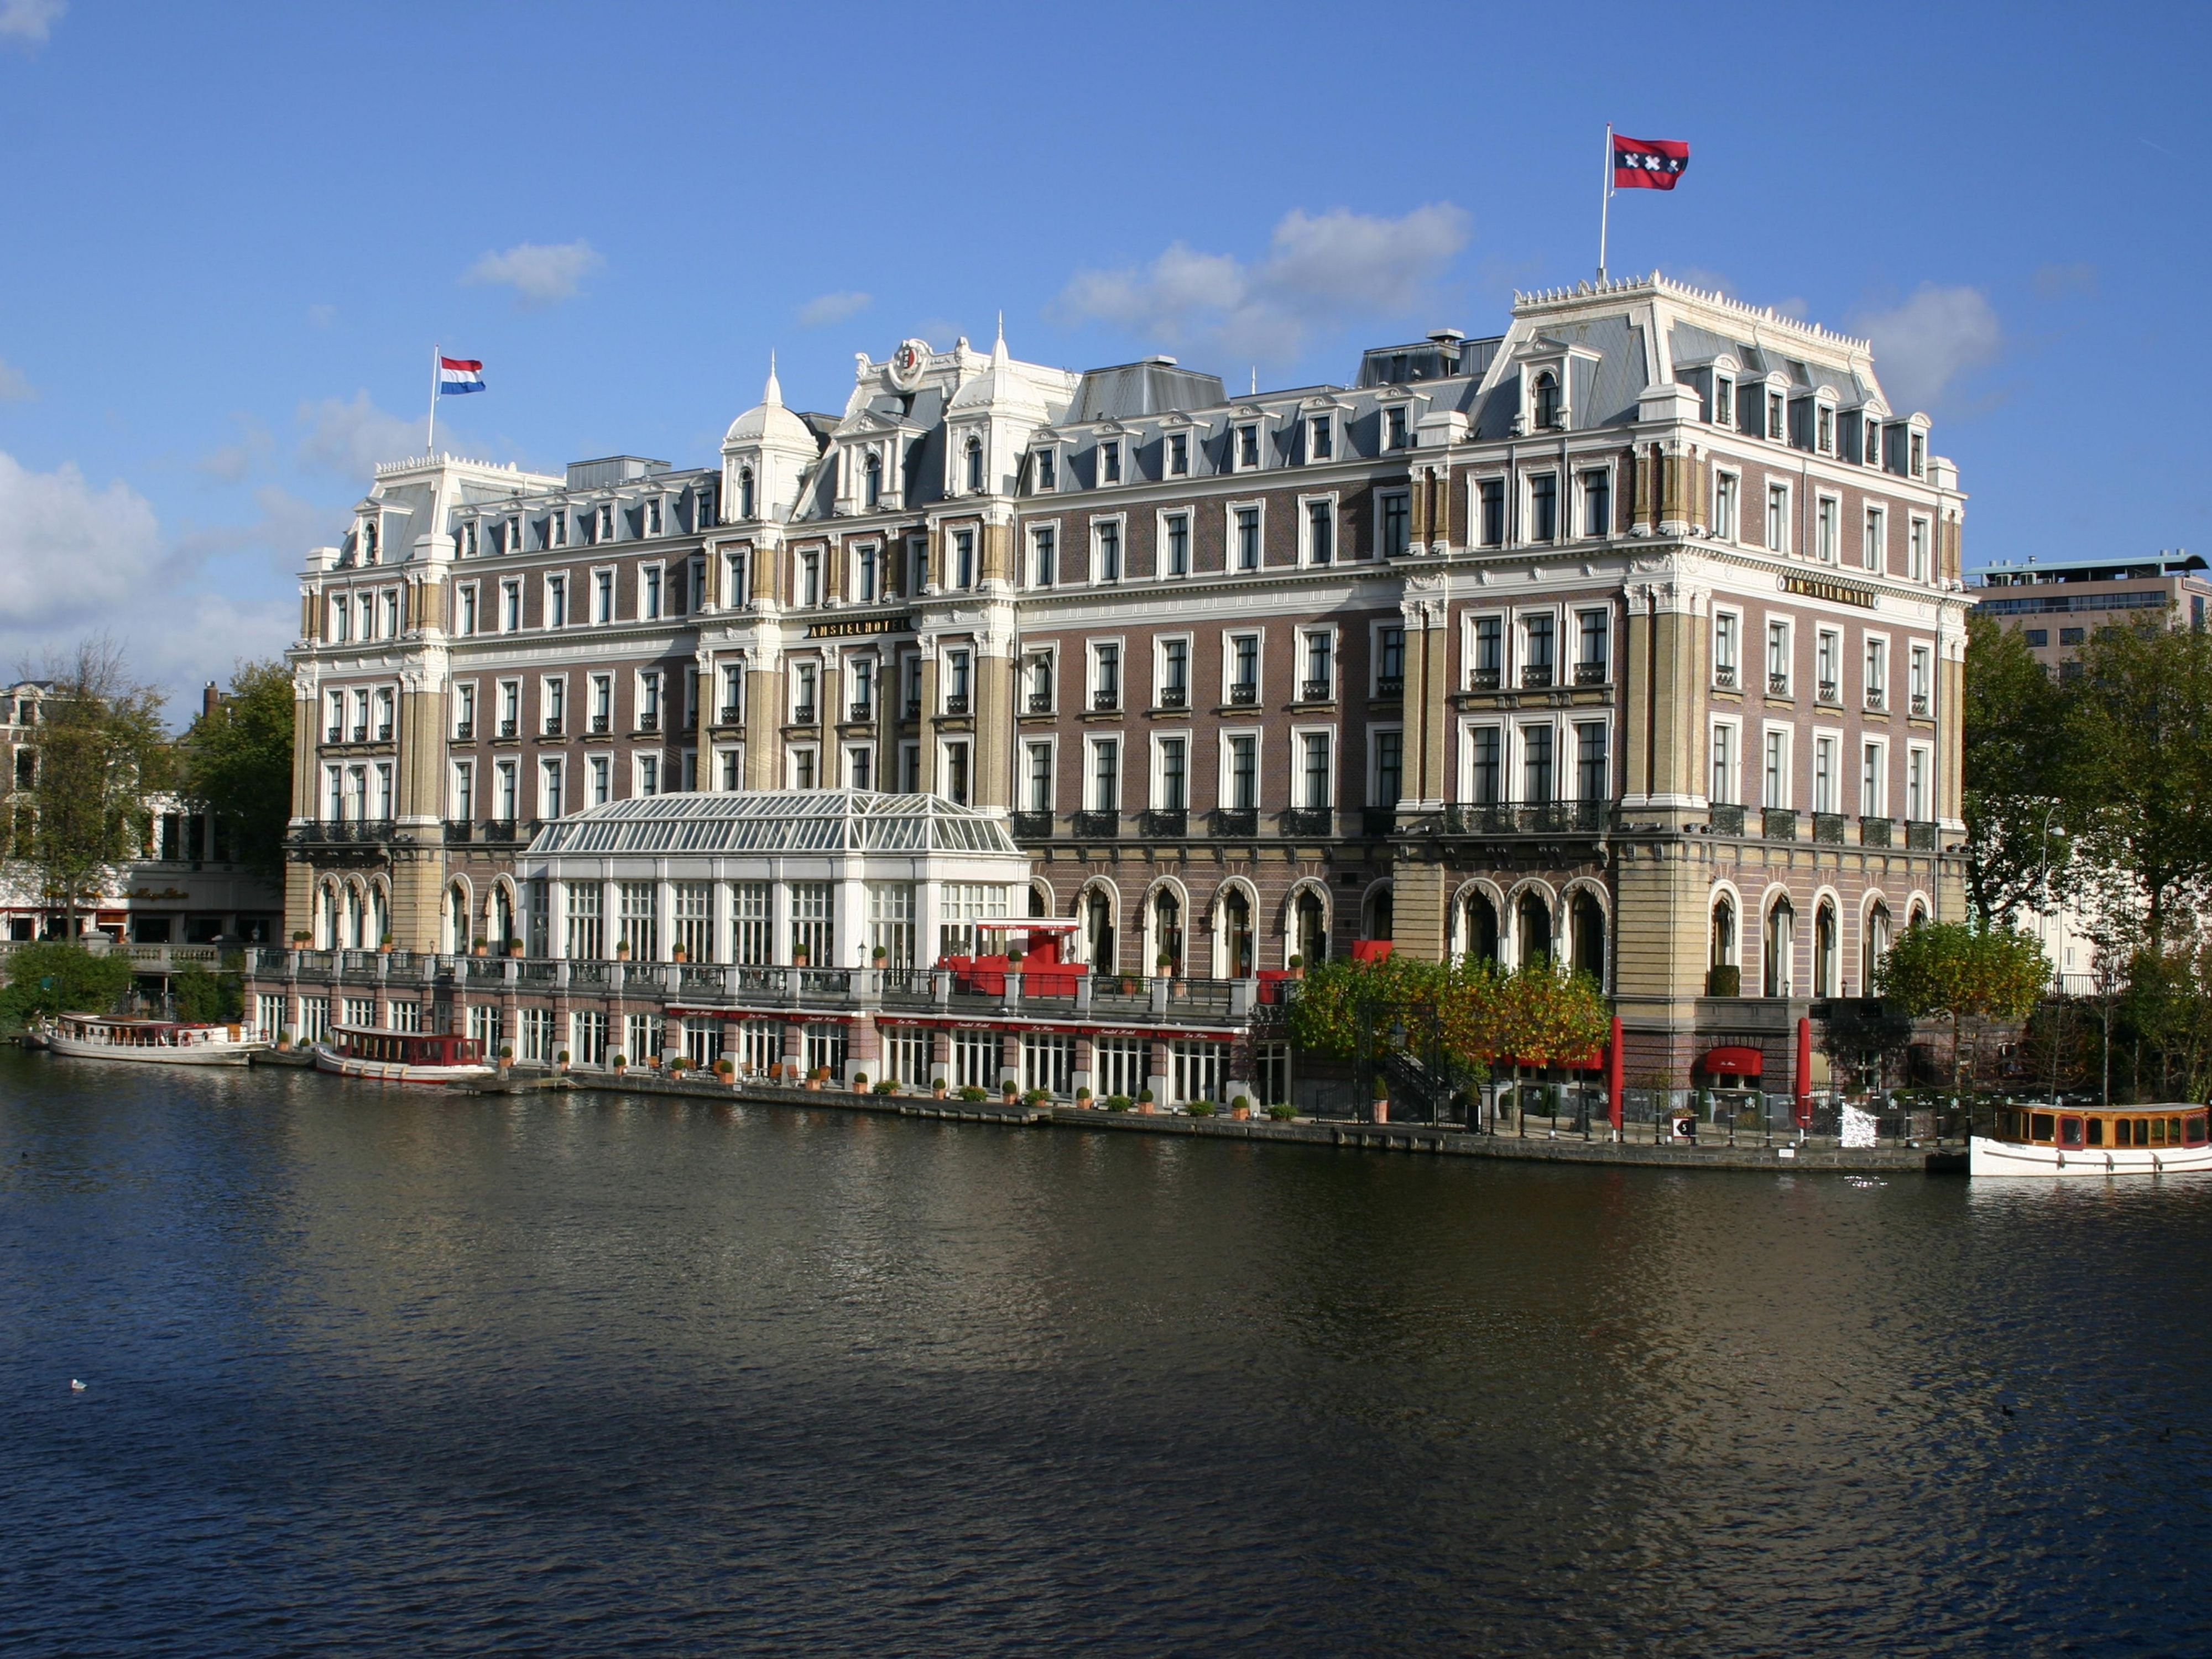 InterContinental Amstel Amsterdam